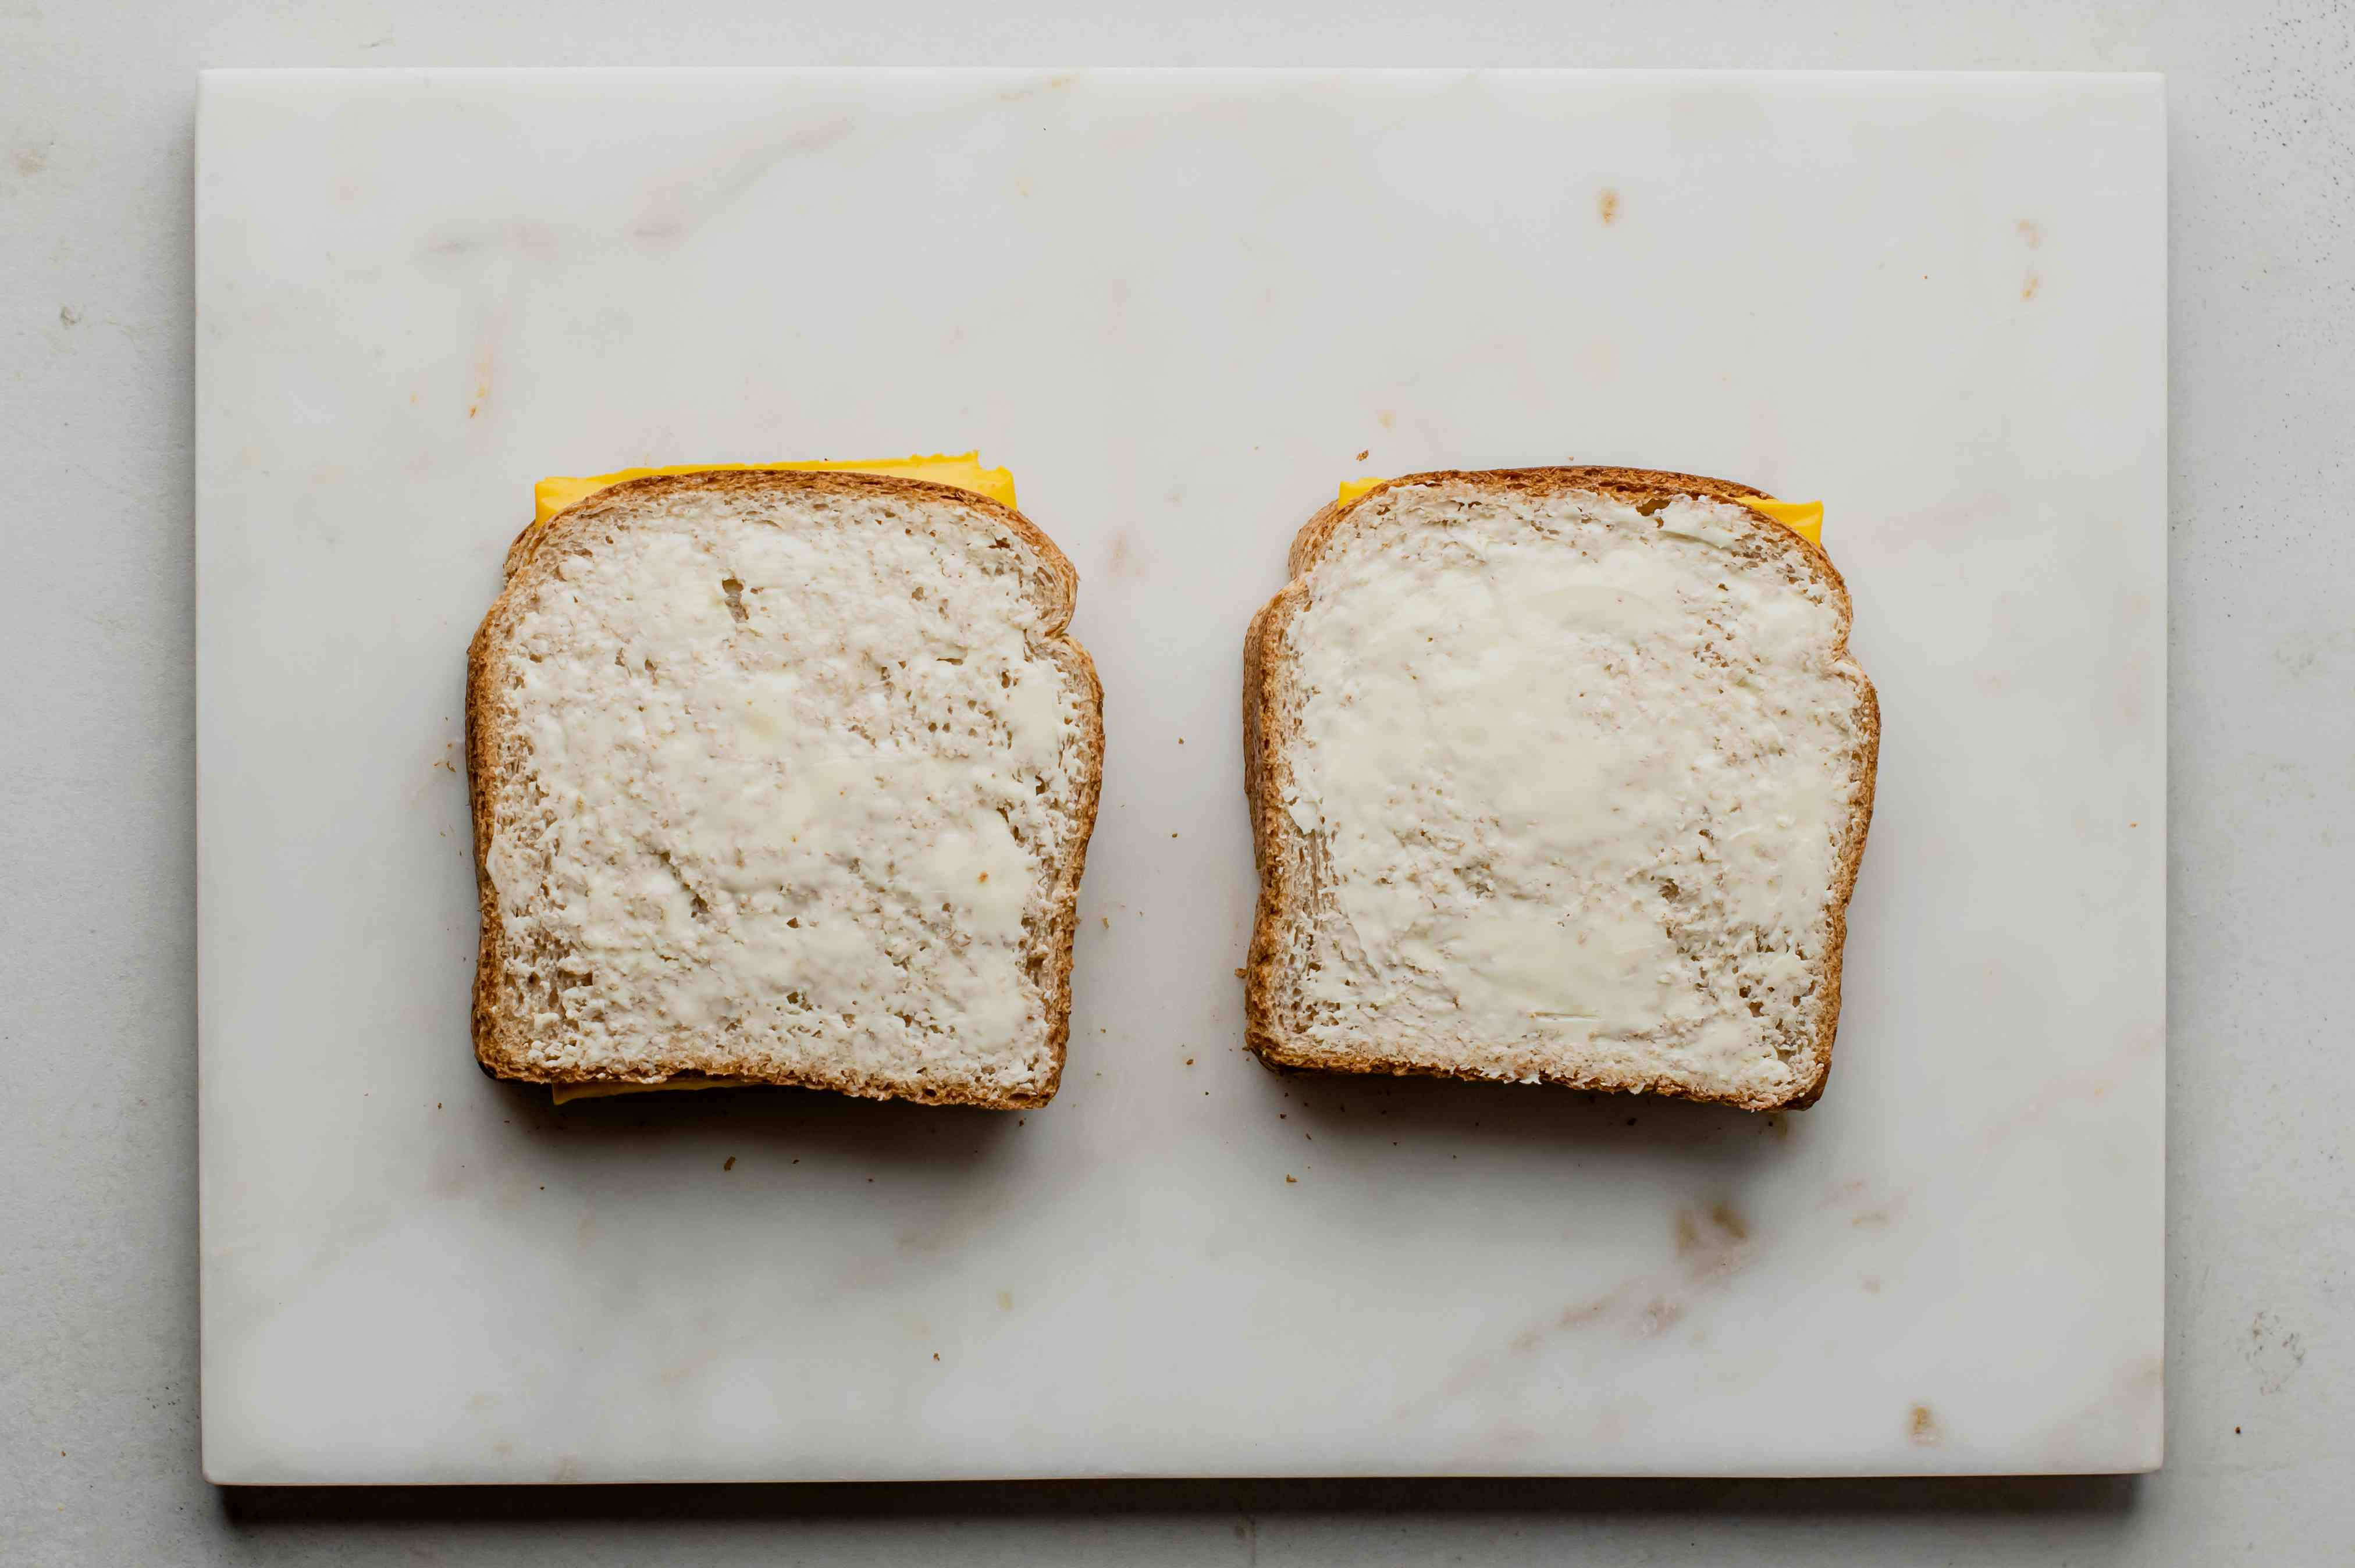 Spread bread with butter